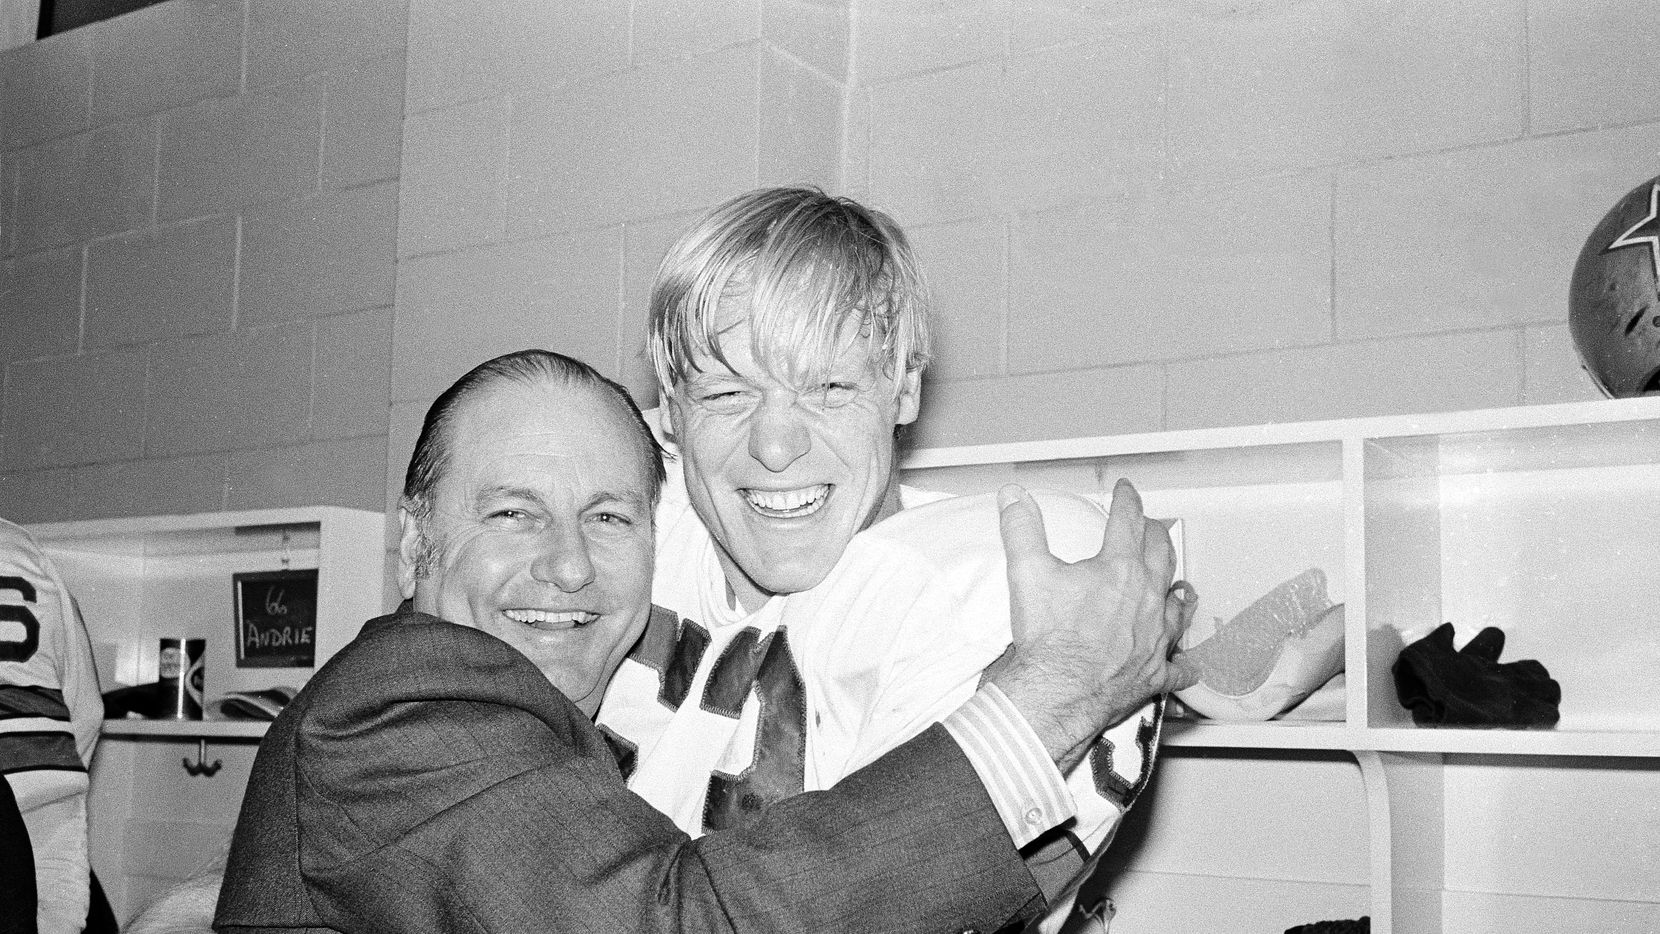 Texas E. Schramm, president and general manager of the Dallas Cowboys, gives defensive end Larry Cole a hearty embrace for this defensive play against the Detroit Lions in the Cotton Bowl in Dallas, Dec. 27, 1970. Cole was among the first of the Cowboys Doomsday Defense to trap Detroit quarterback Greg Landry in the end zone for a safety, in the NFC playoff game, won by Dallas, 5-0.